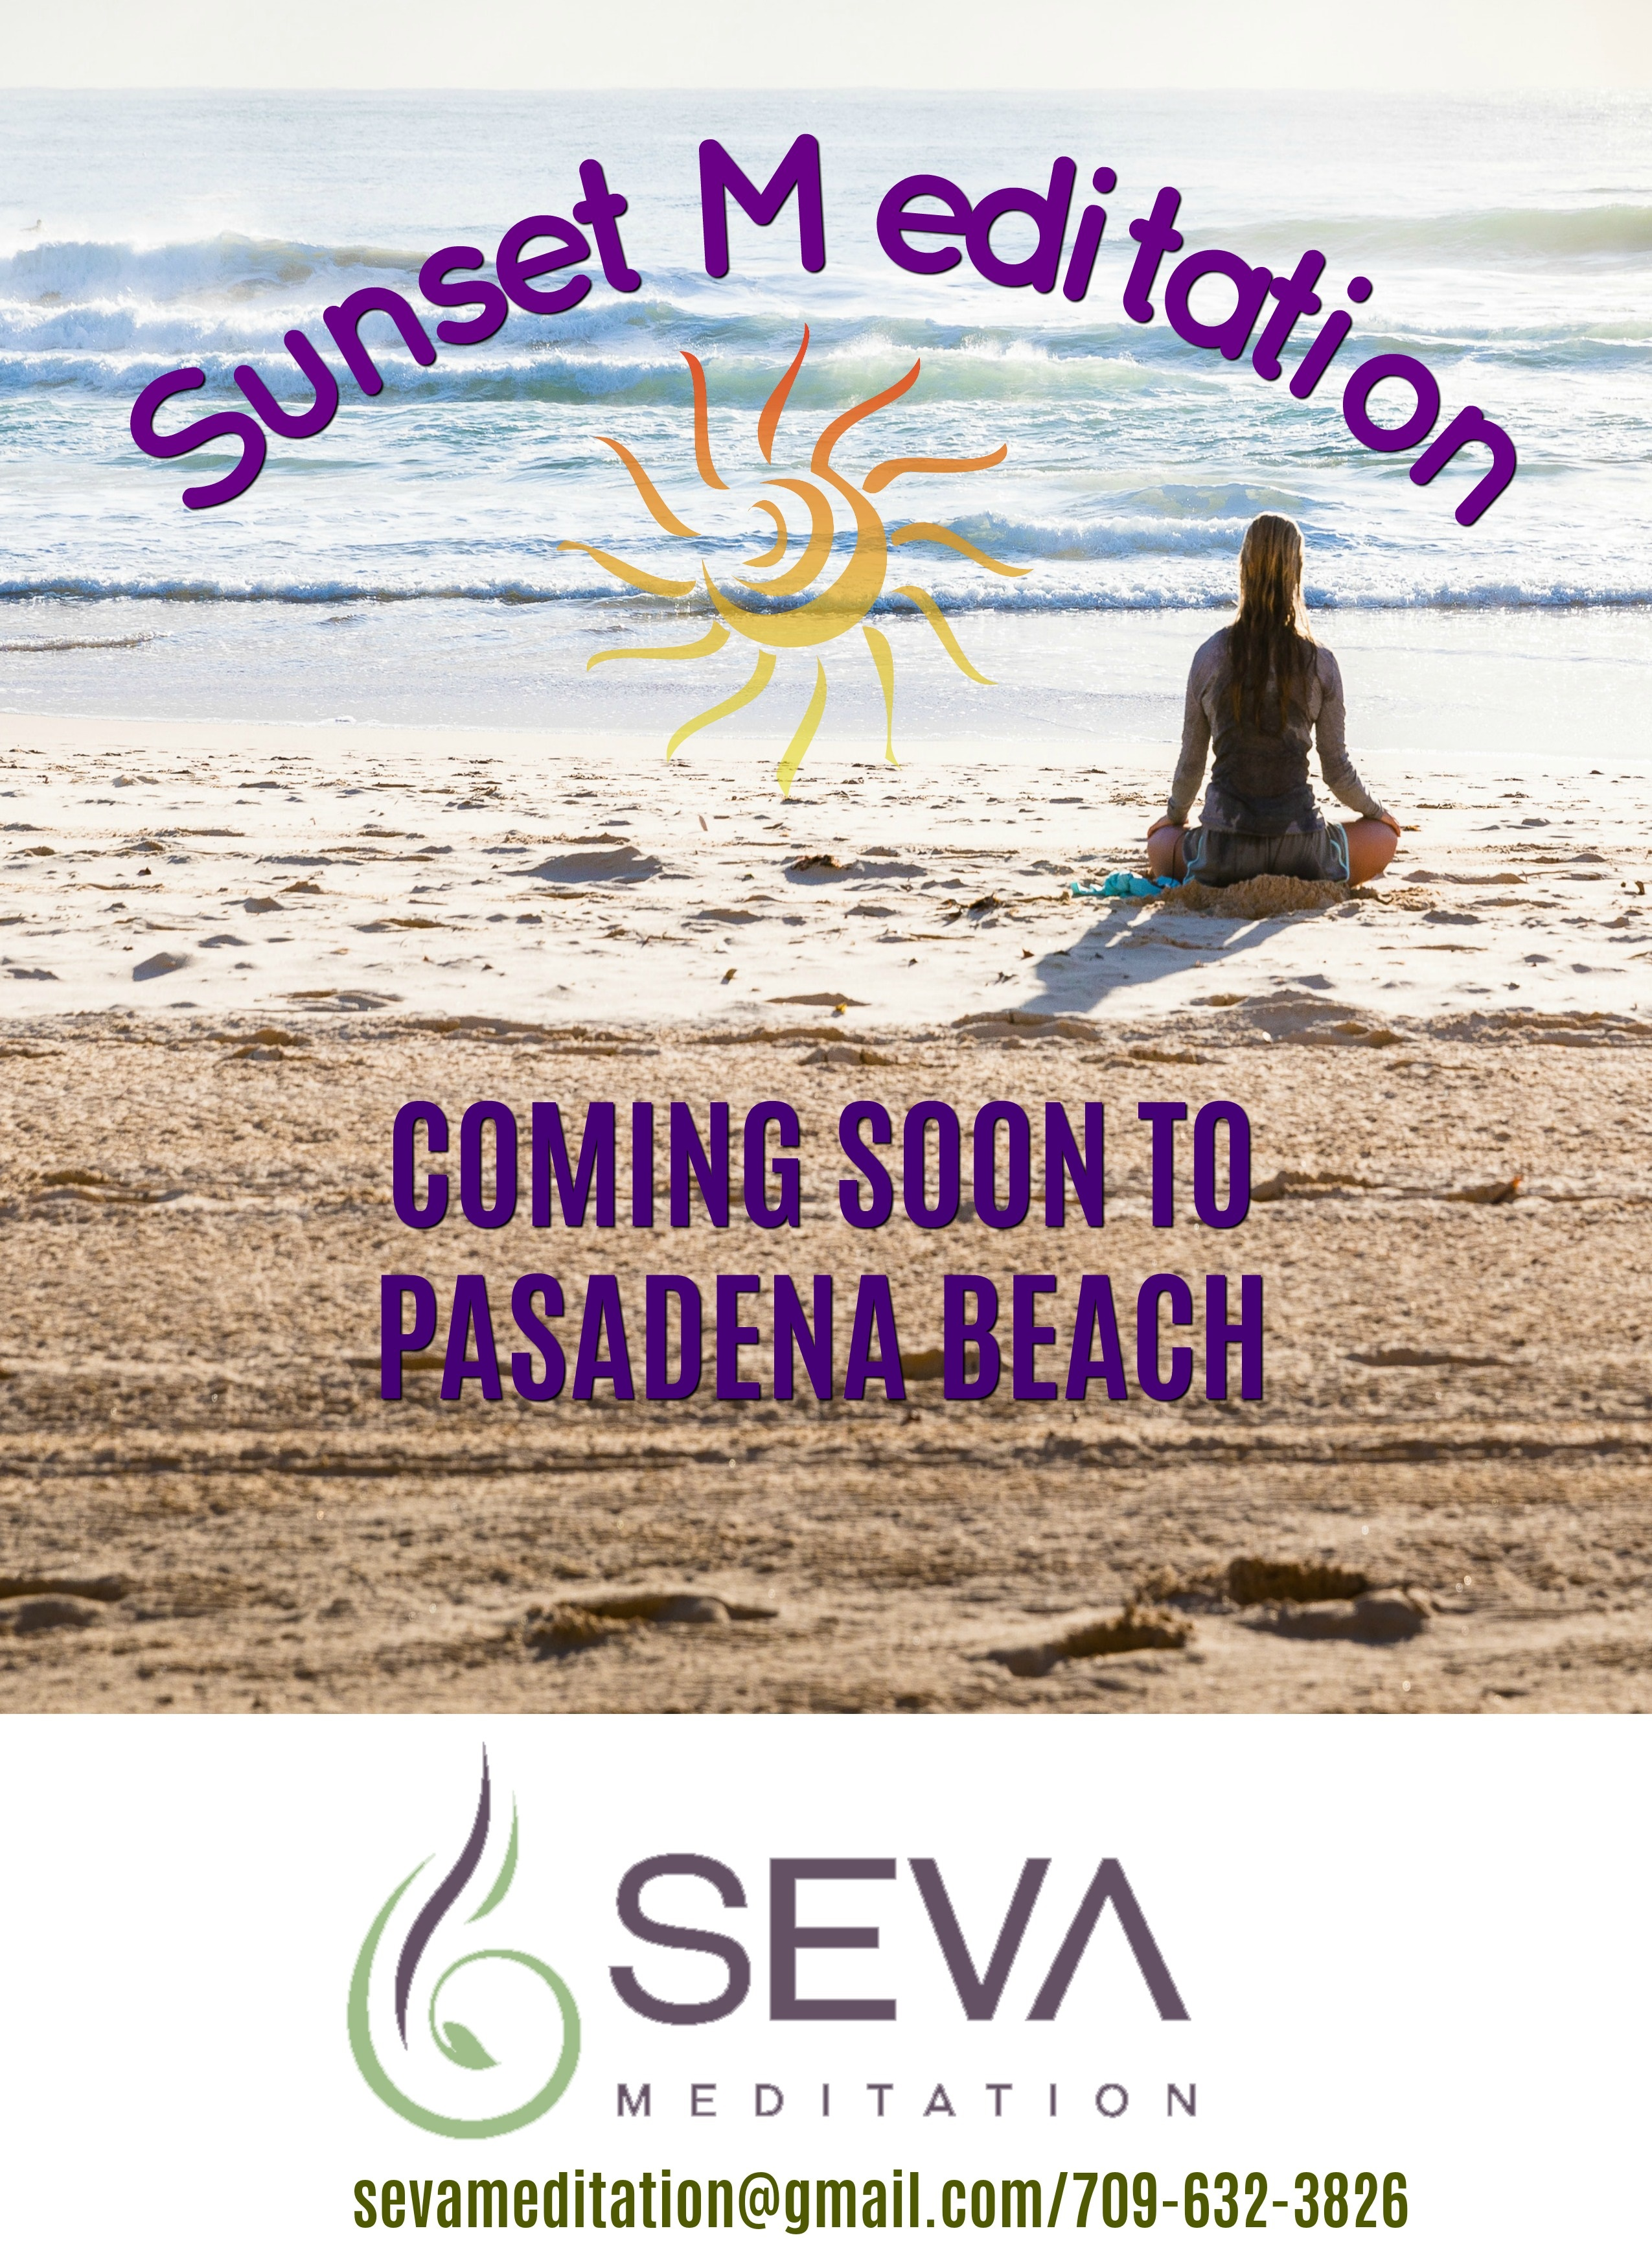 Sunset Beach Meditations 2020 ~ Pasadena Beach!